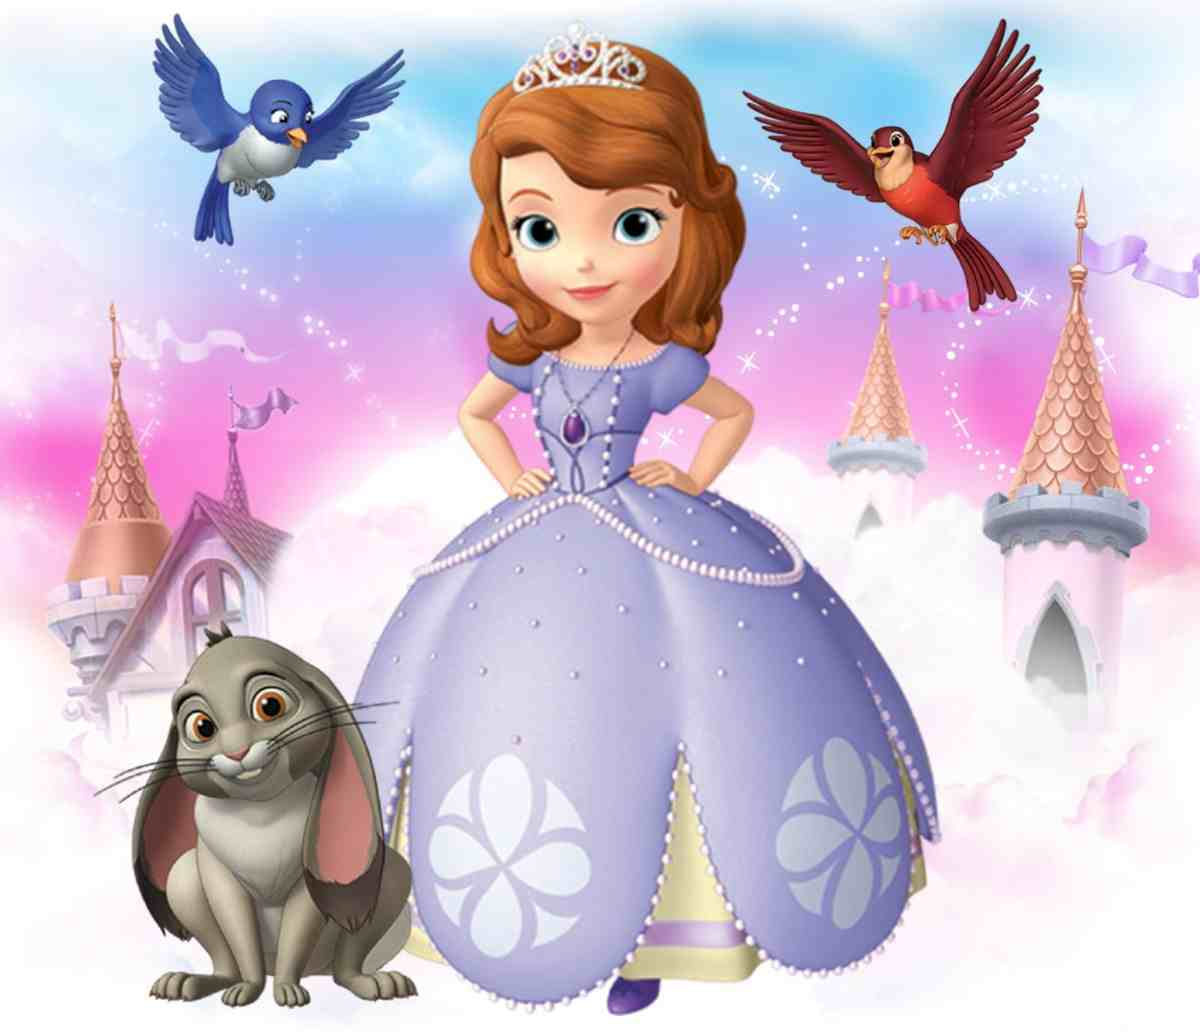 Sofia The First Sofia The First Fan Art 38583668 Fanpop